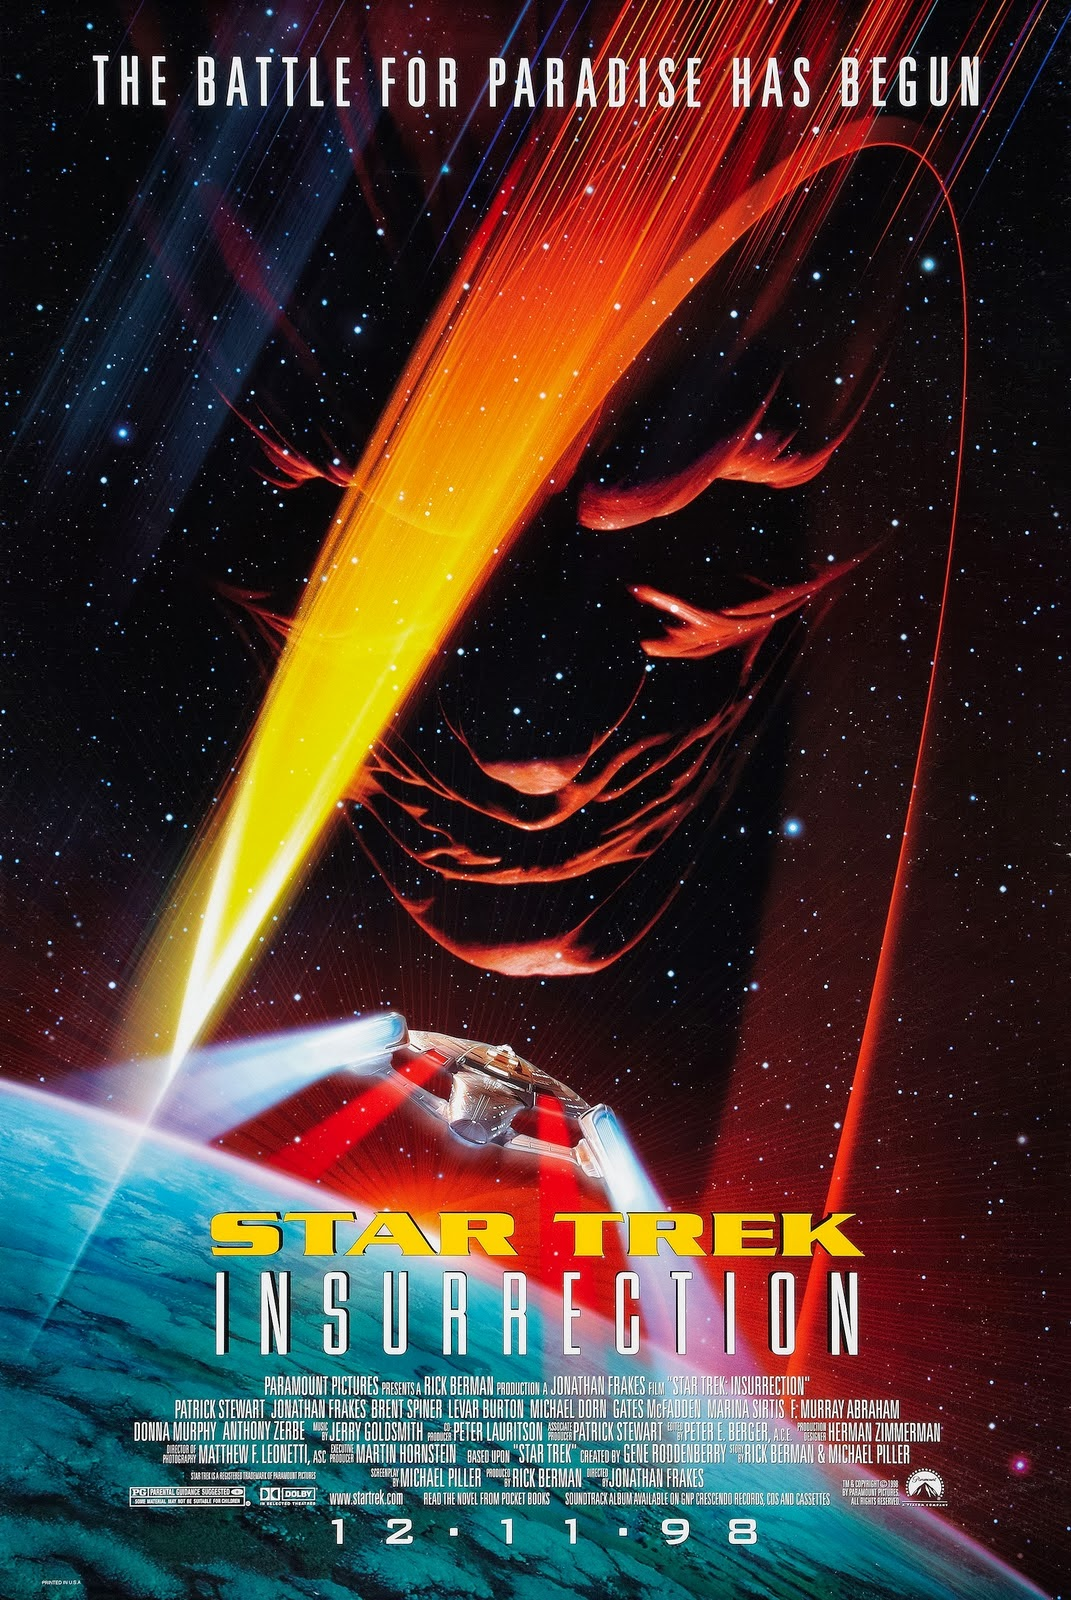 Star Trek Insurrection Movie Poster